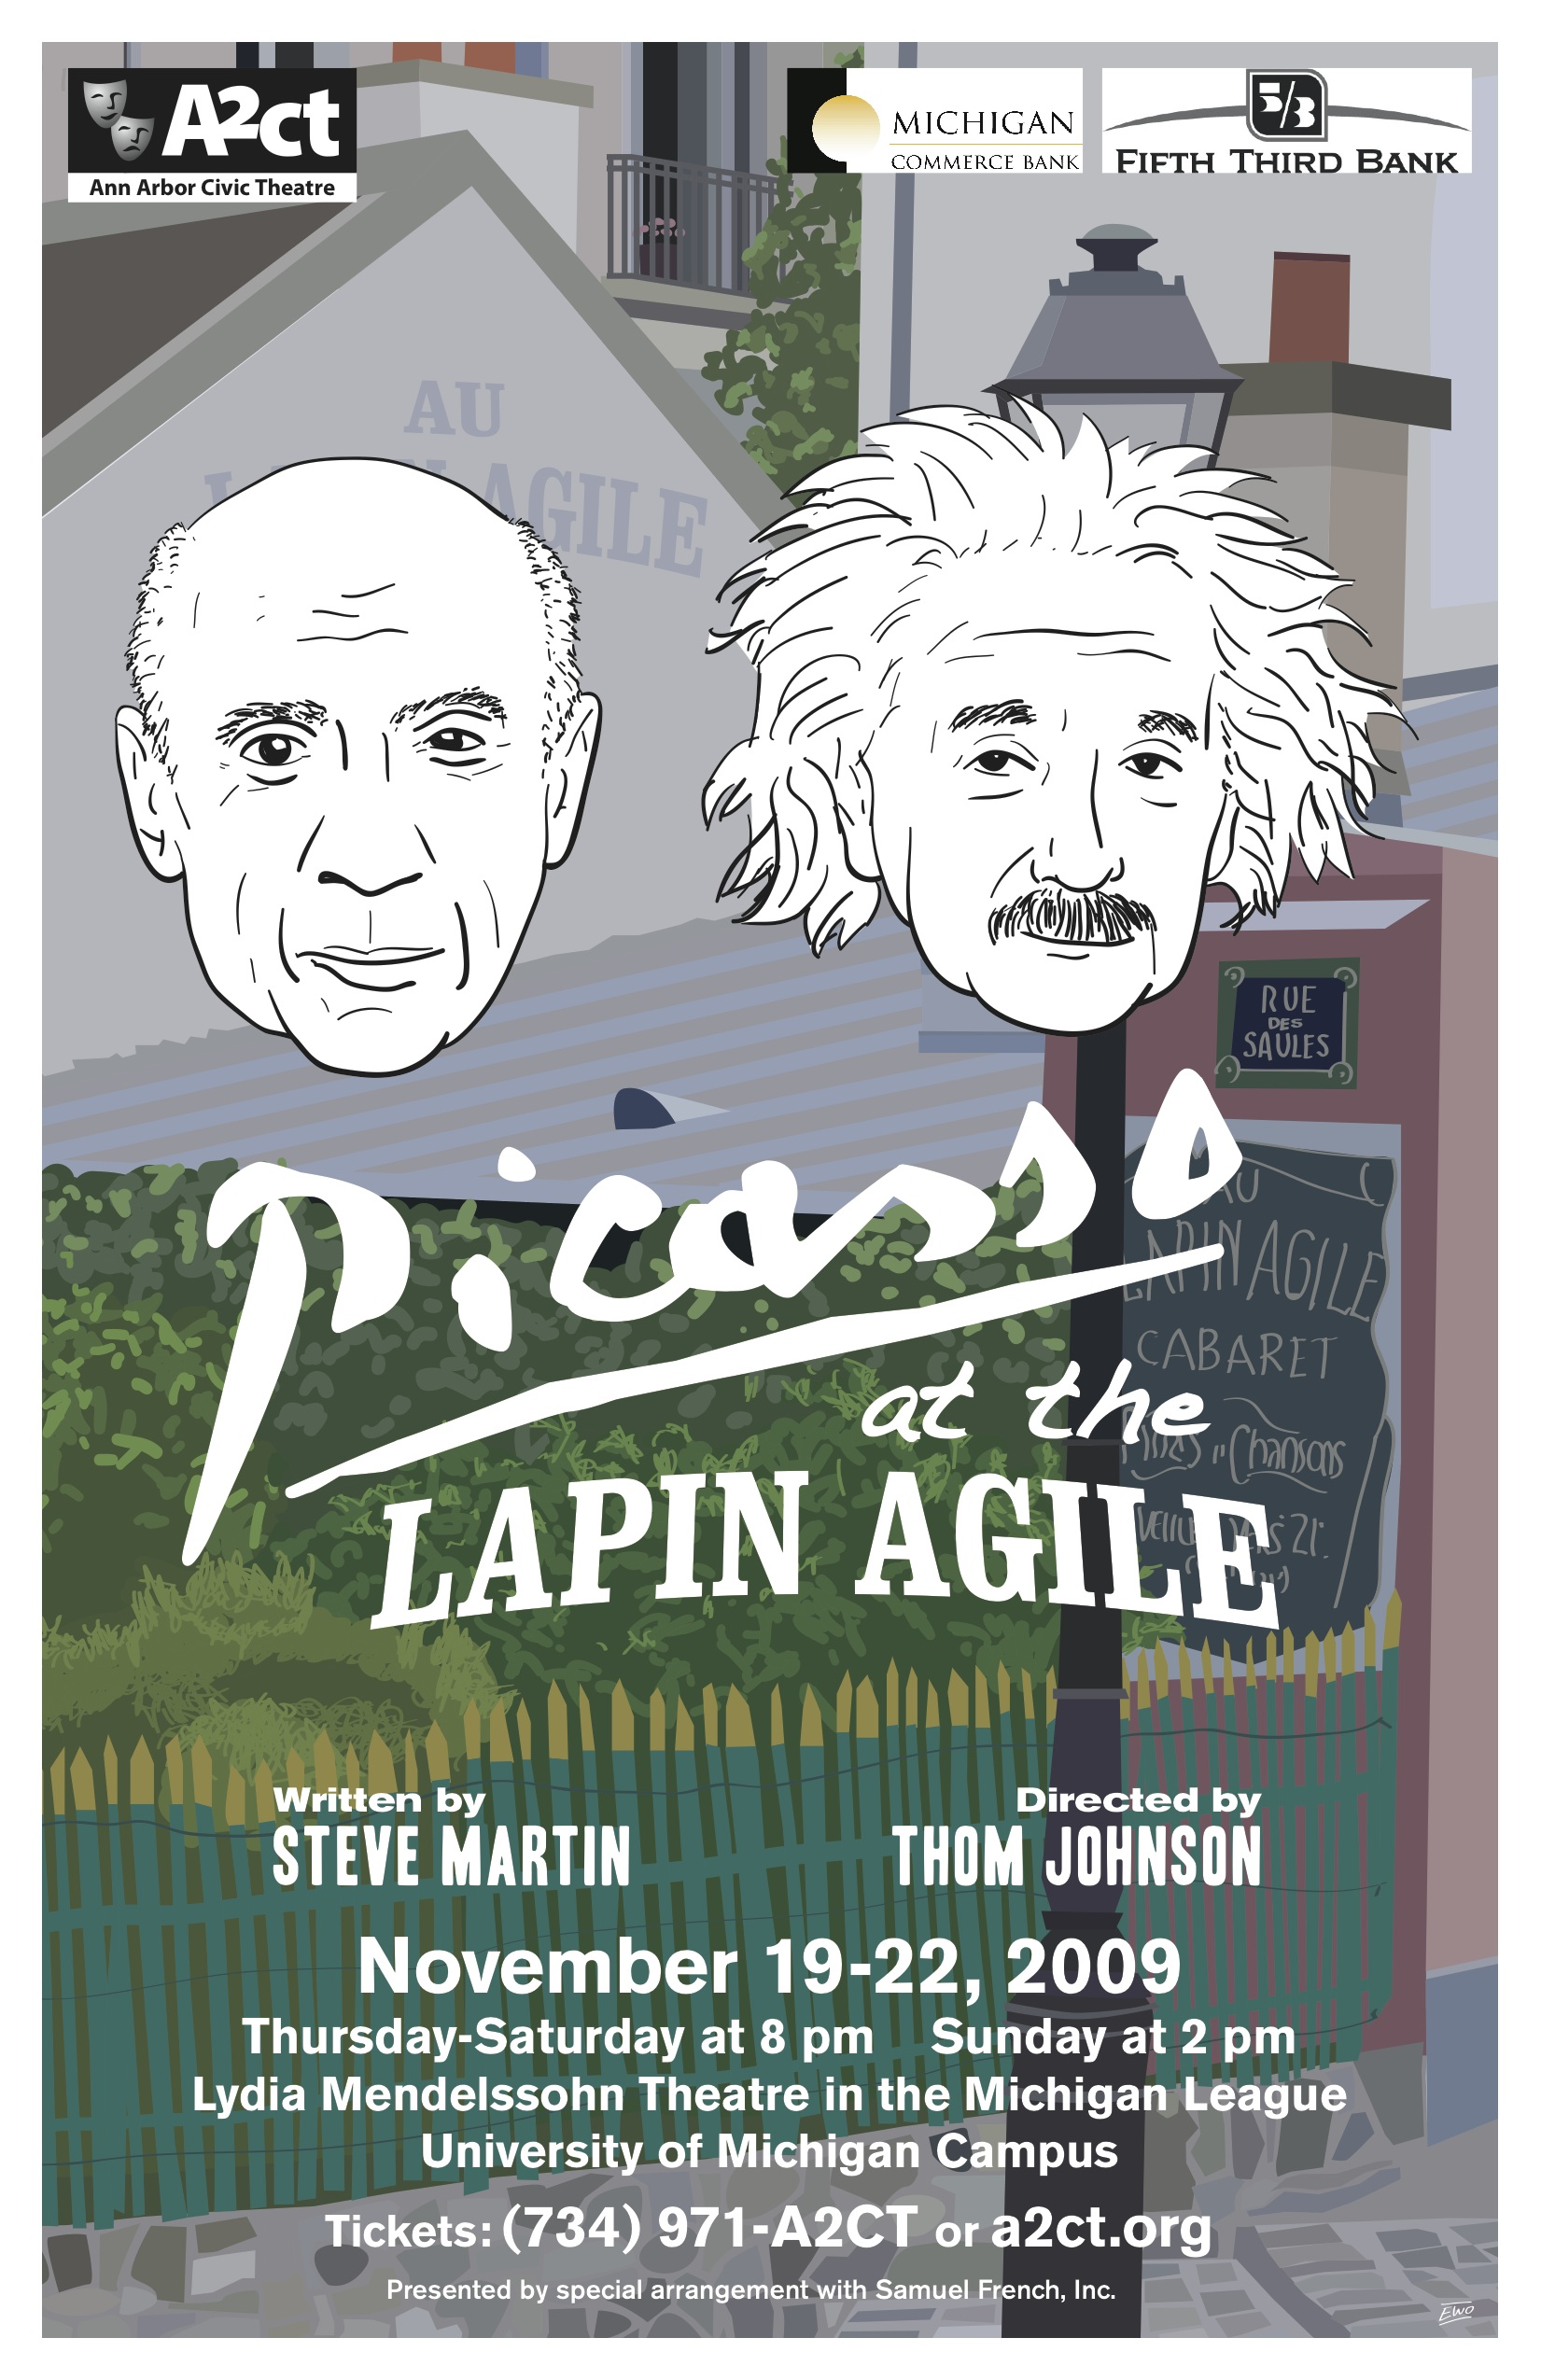 Ann Arbor Civic Theatre Poster: Picasso at the Lapin Agile image